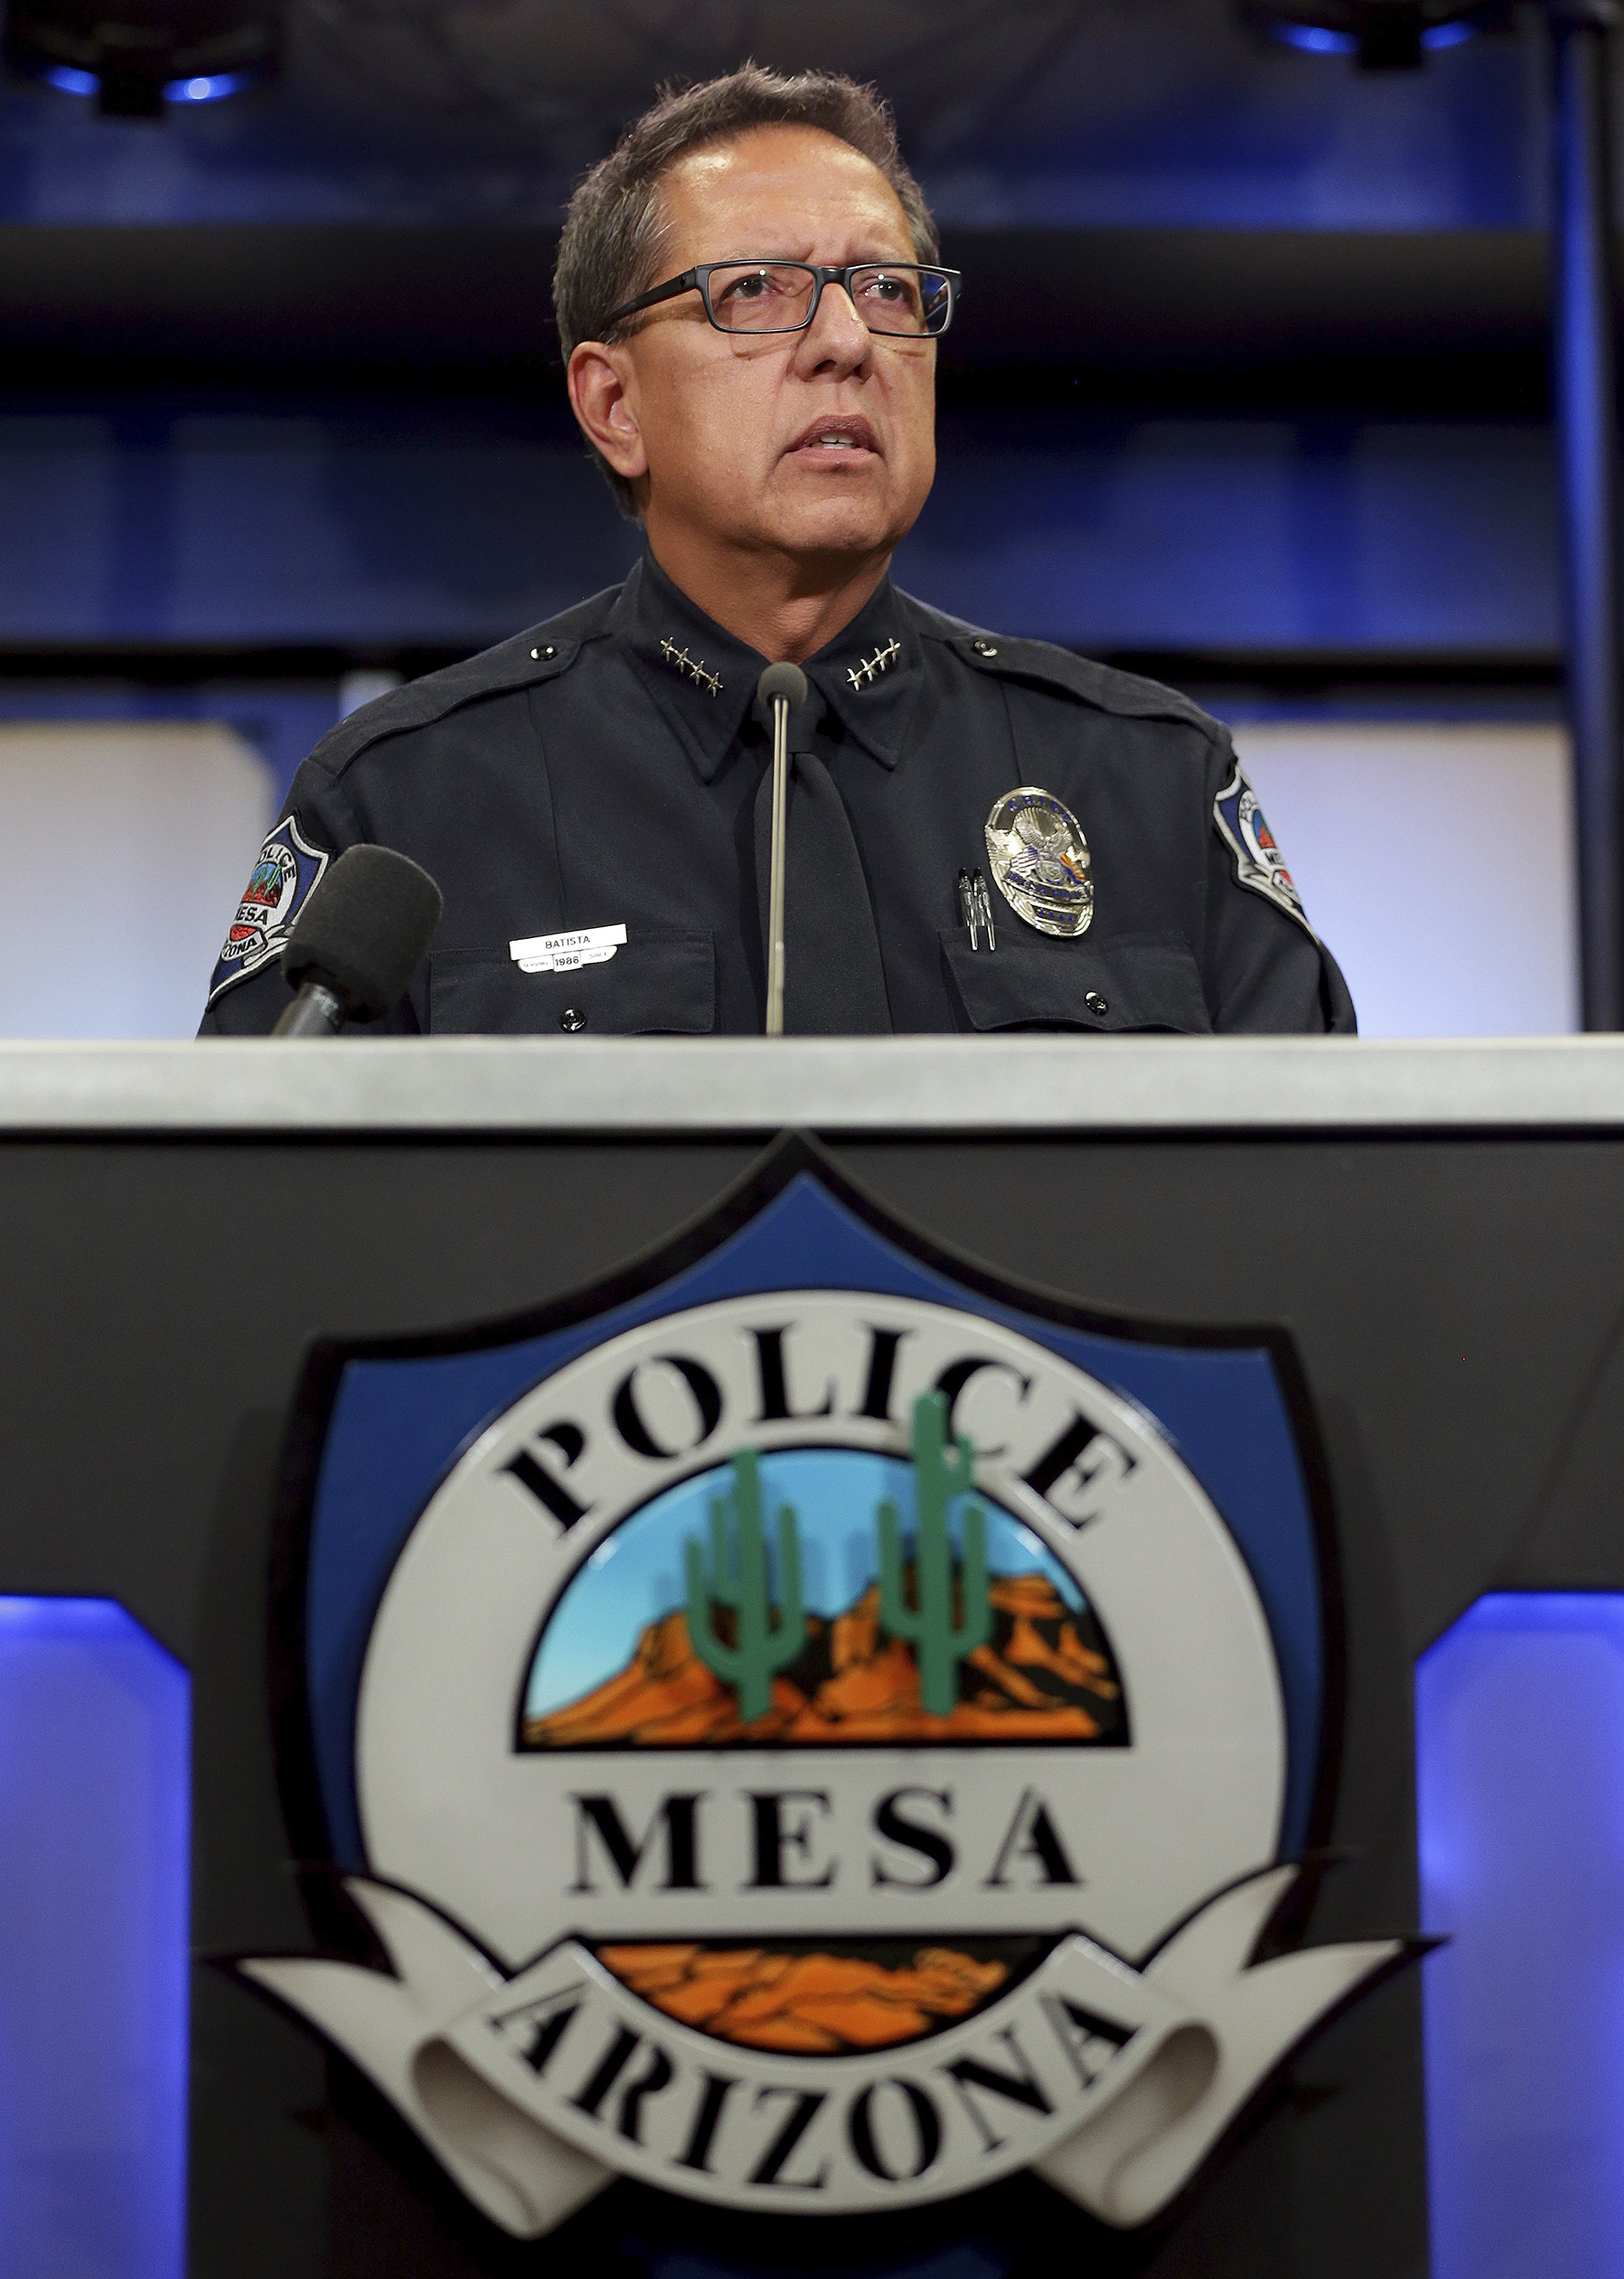 Arizona-police-chief-says-he's-angry-over-recent-use-of-force-incidents